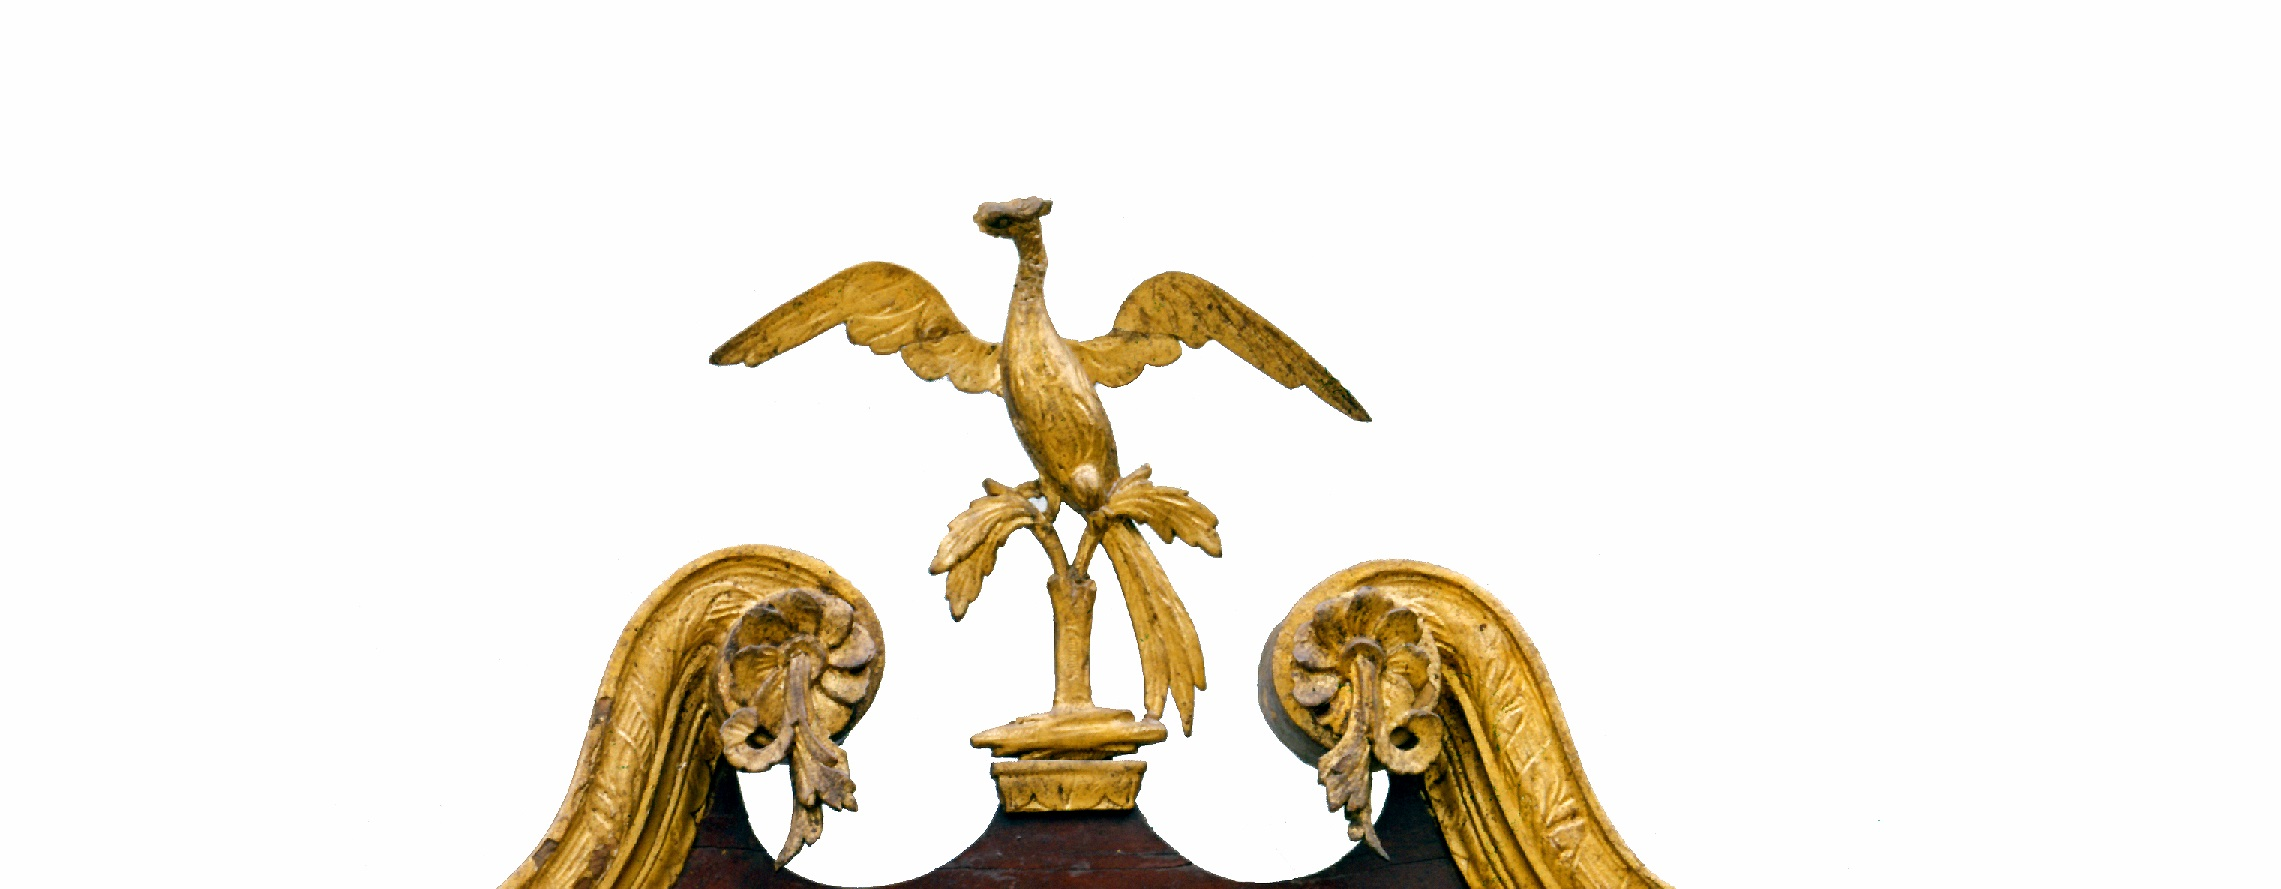 The reproduction finial will be modeled on this original phoenix finial, from a Washington-owned looking glass (MVLA -W-2181).